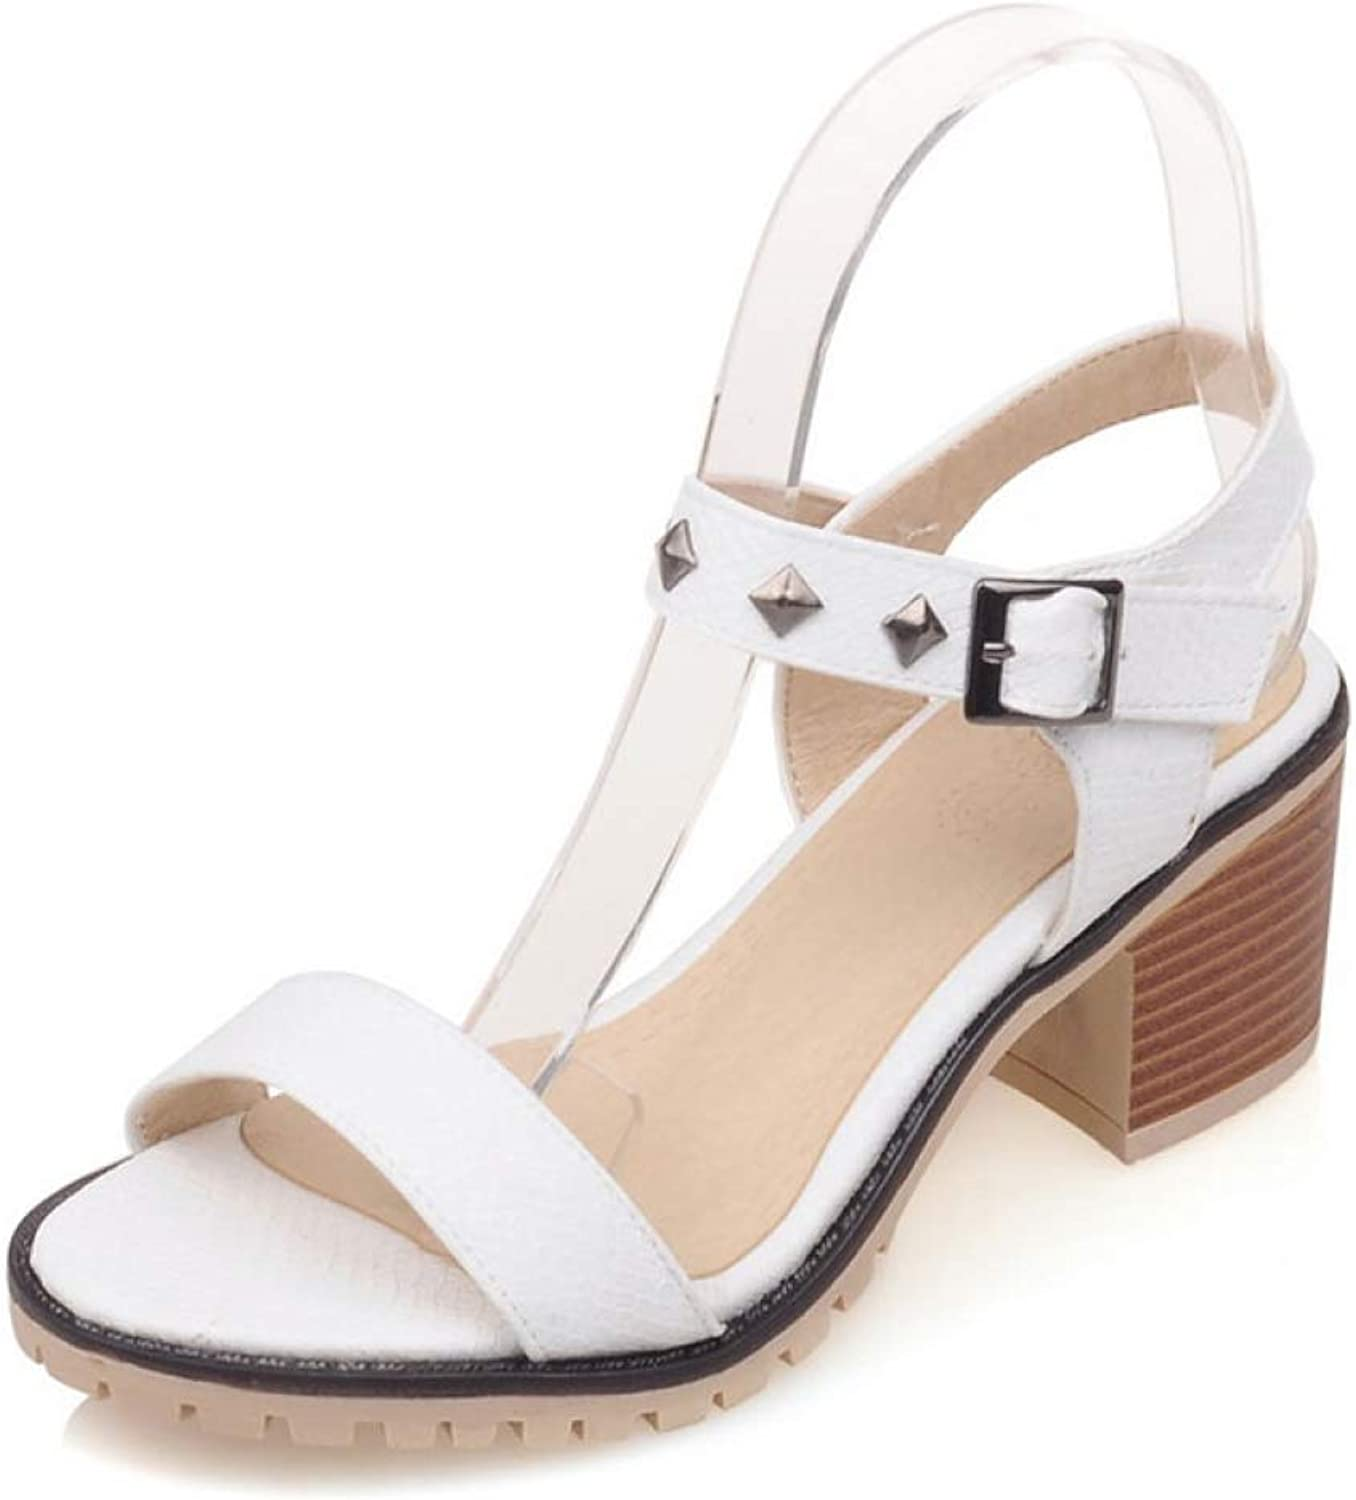 T-JULY Sandalias Women's Sandals Square High Heels Open Toe Ladies Girl's Party shoes with Rivet Buckle Ankle Strap